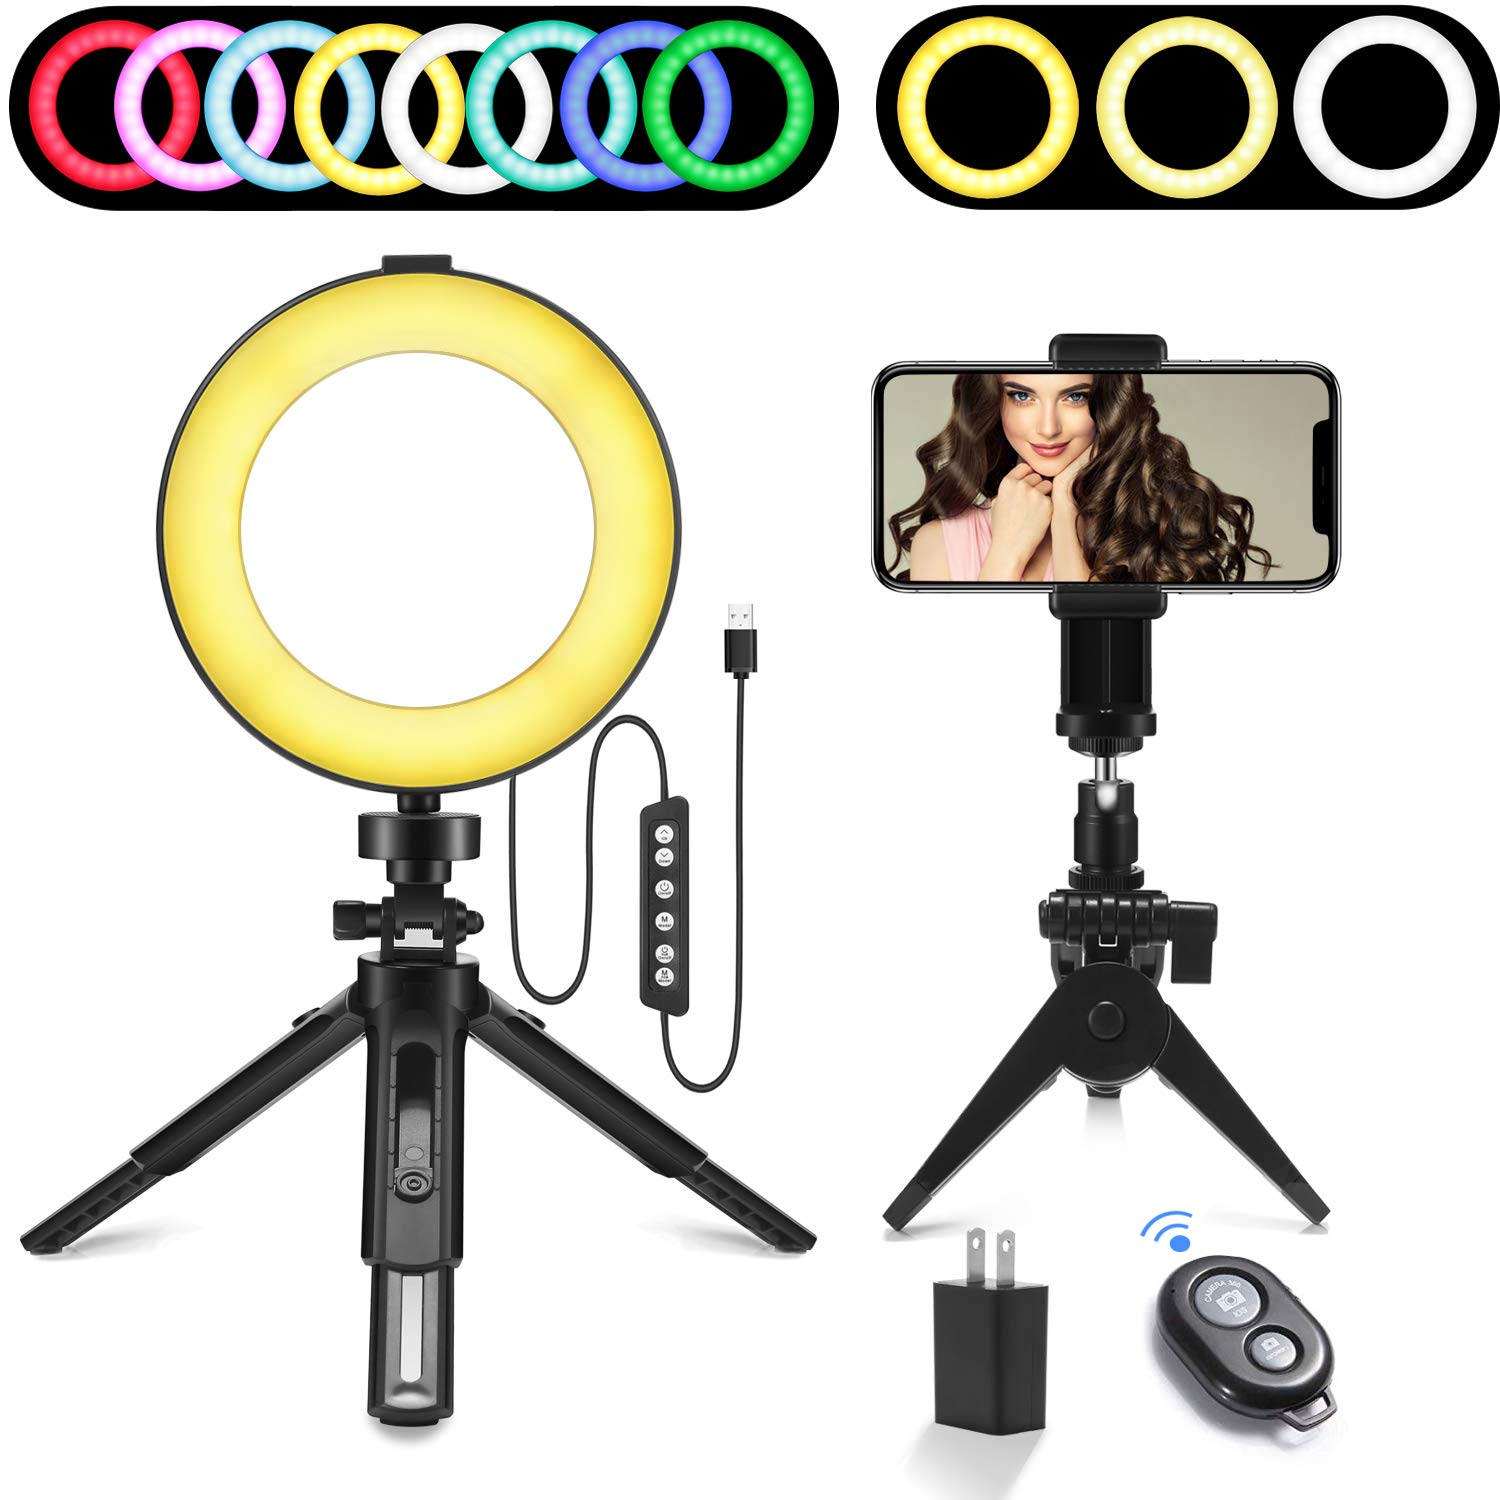 Ring Light, 6'' RGB Dimmable LED Ring Light kit with Adjustable Tripod Stand and Cell Phone Holder,8 RGB Colors & 3 Normal Colors, Mini Led Camera Desktop Ring Light for Selfie,Makeup,YouTube Video